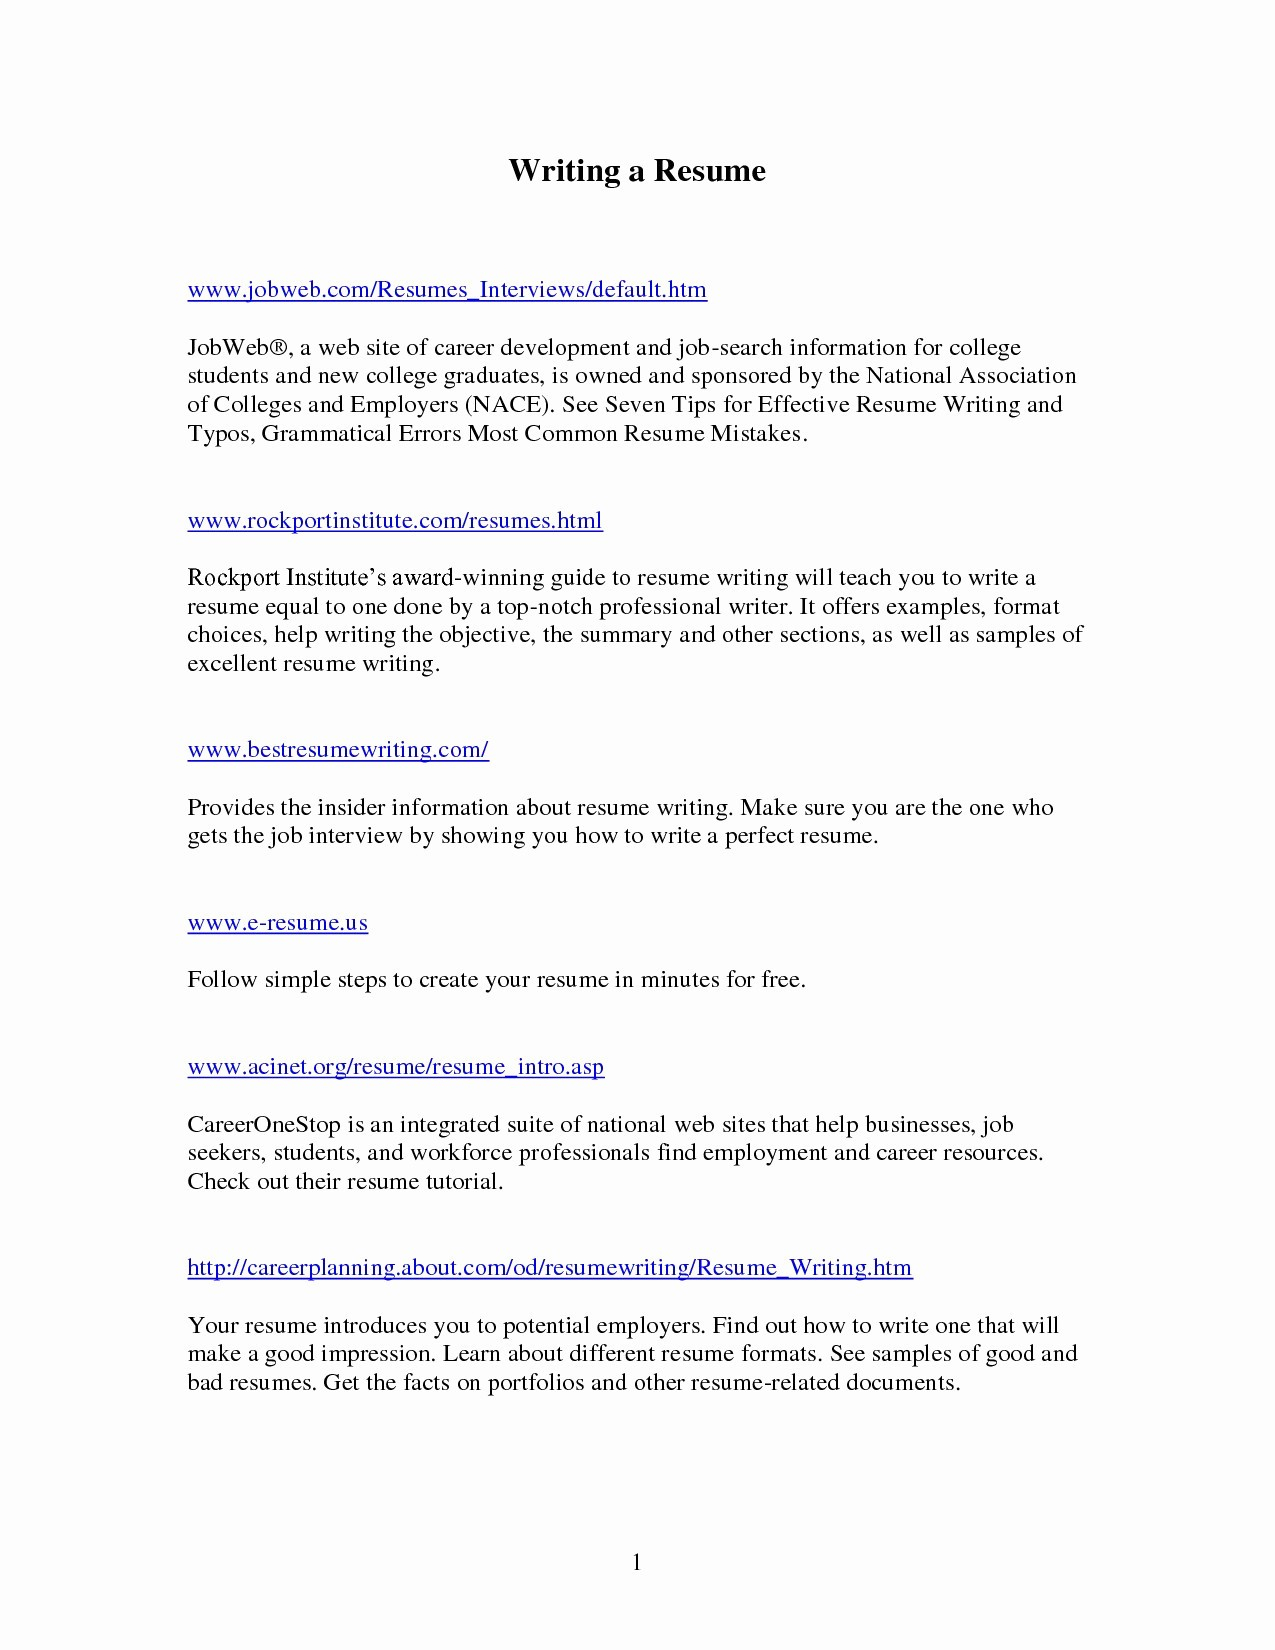 Promise Of Employment Letter Template - Job Promise Letter New Create and Download Free Resume Samples Biz